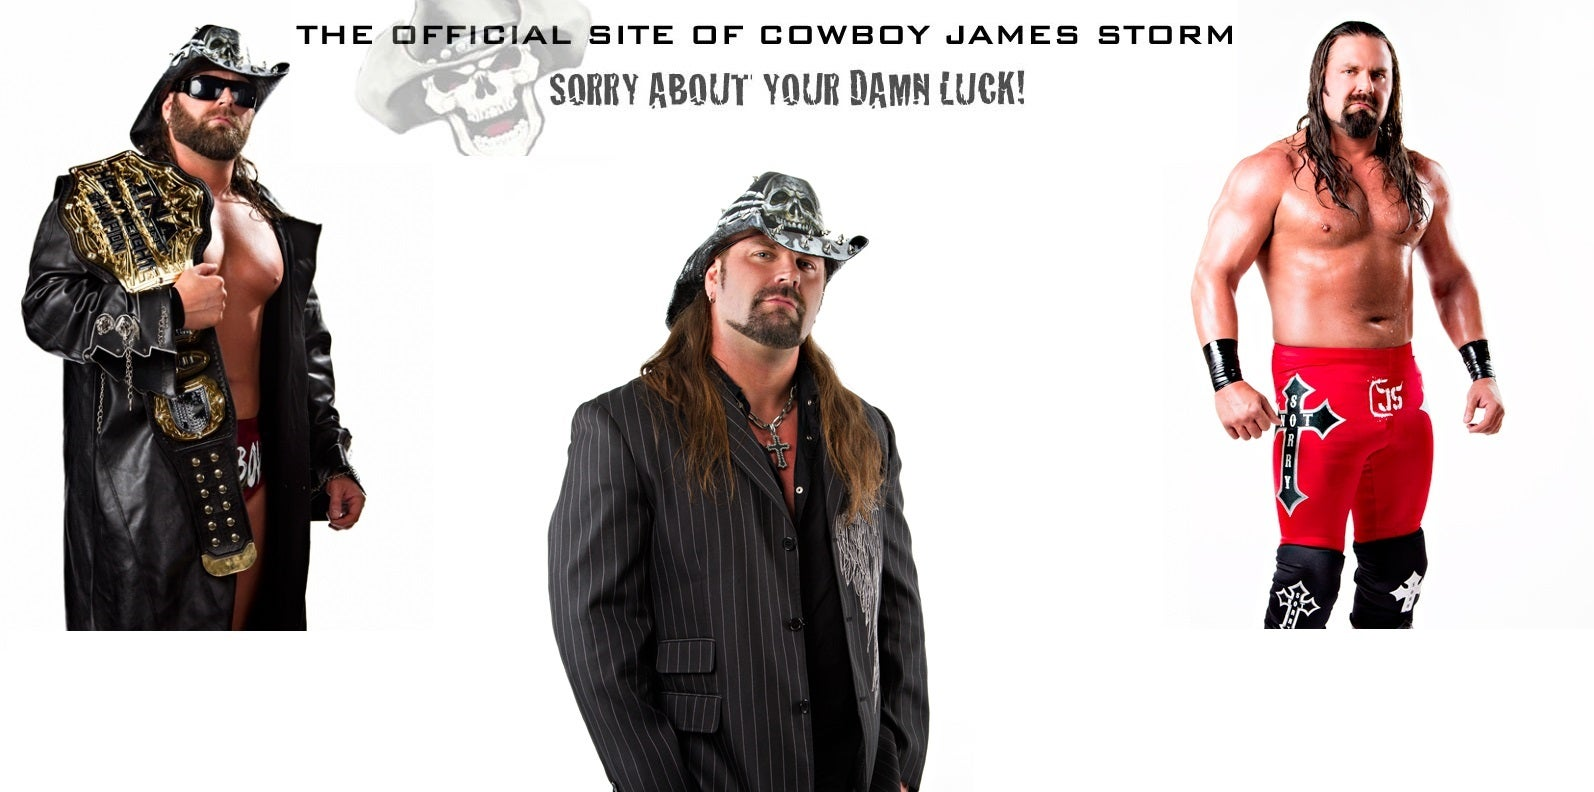 Home of the Cowboy James Storm